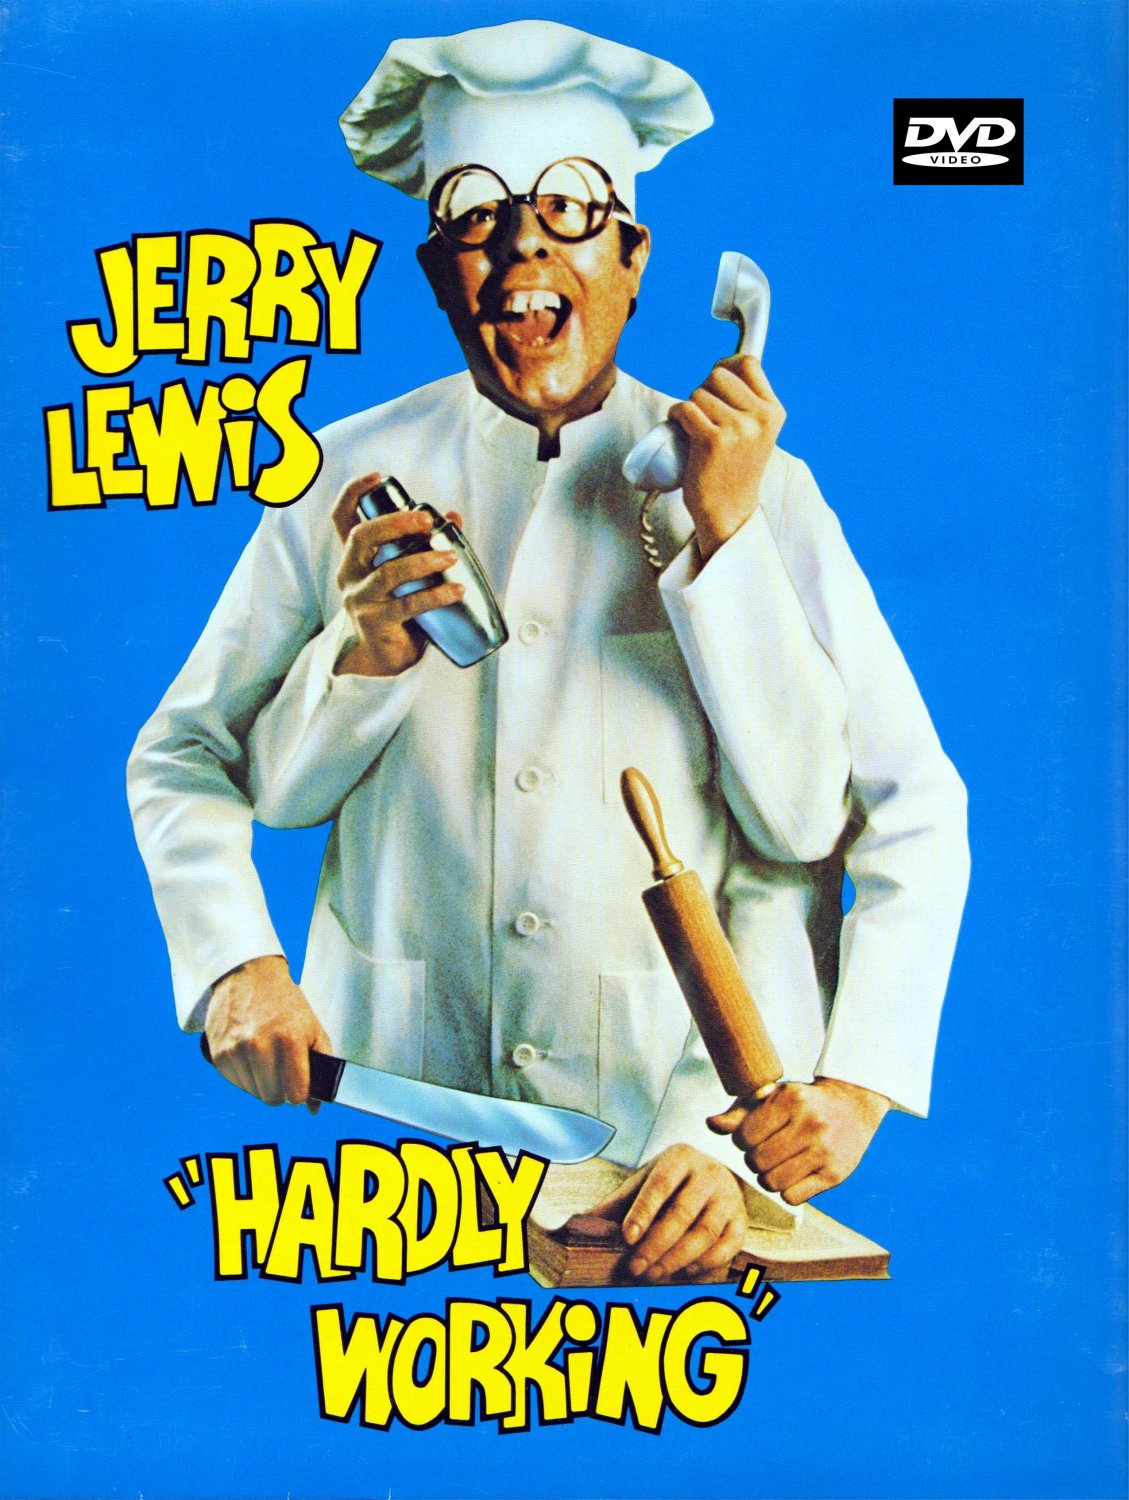 Hardly Working DVD (1980) Jerry Lewis / Susan Oliver - Classic Comedy Film